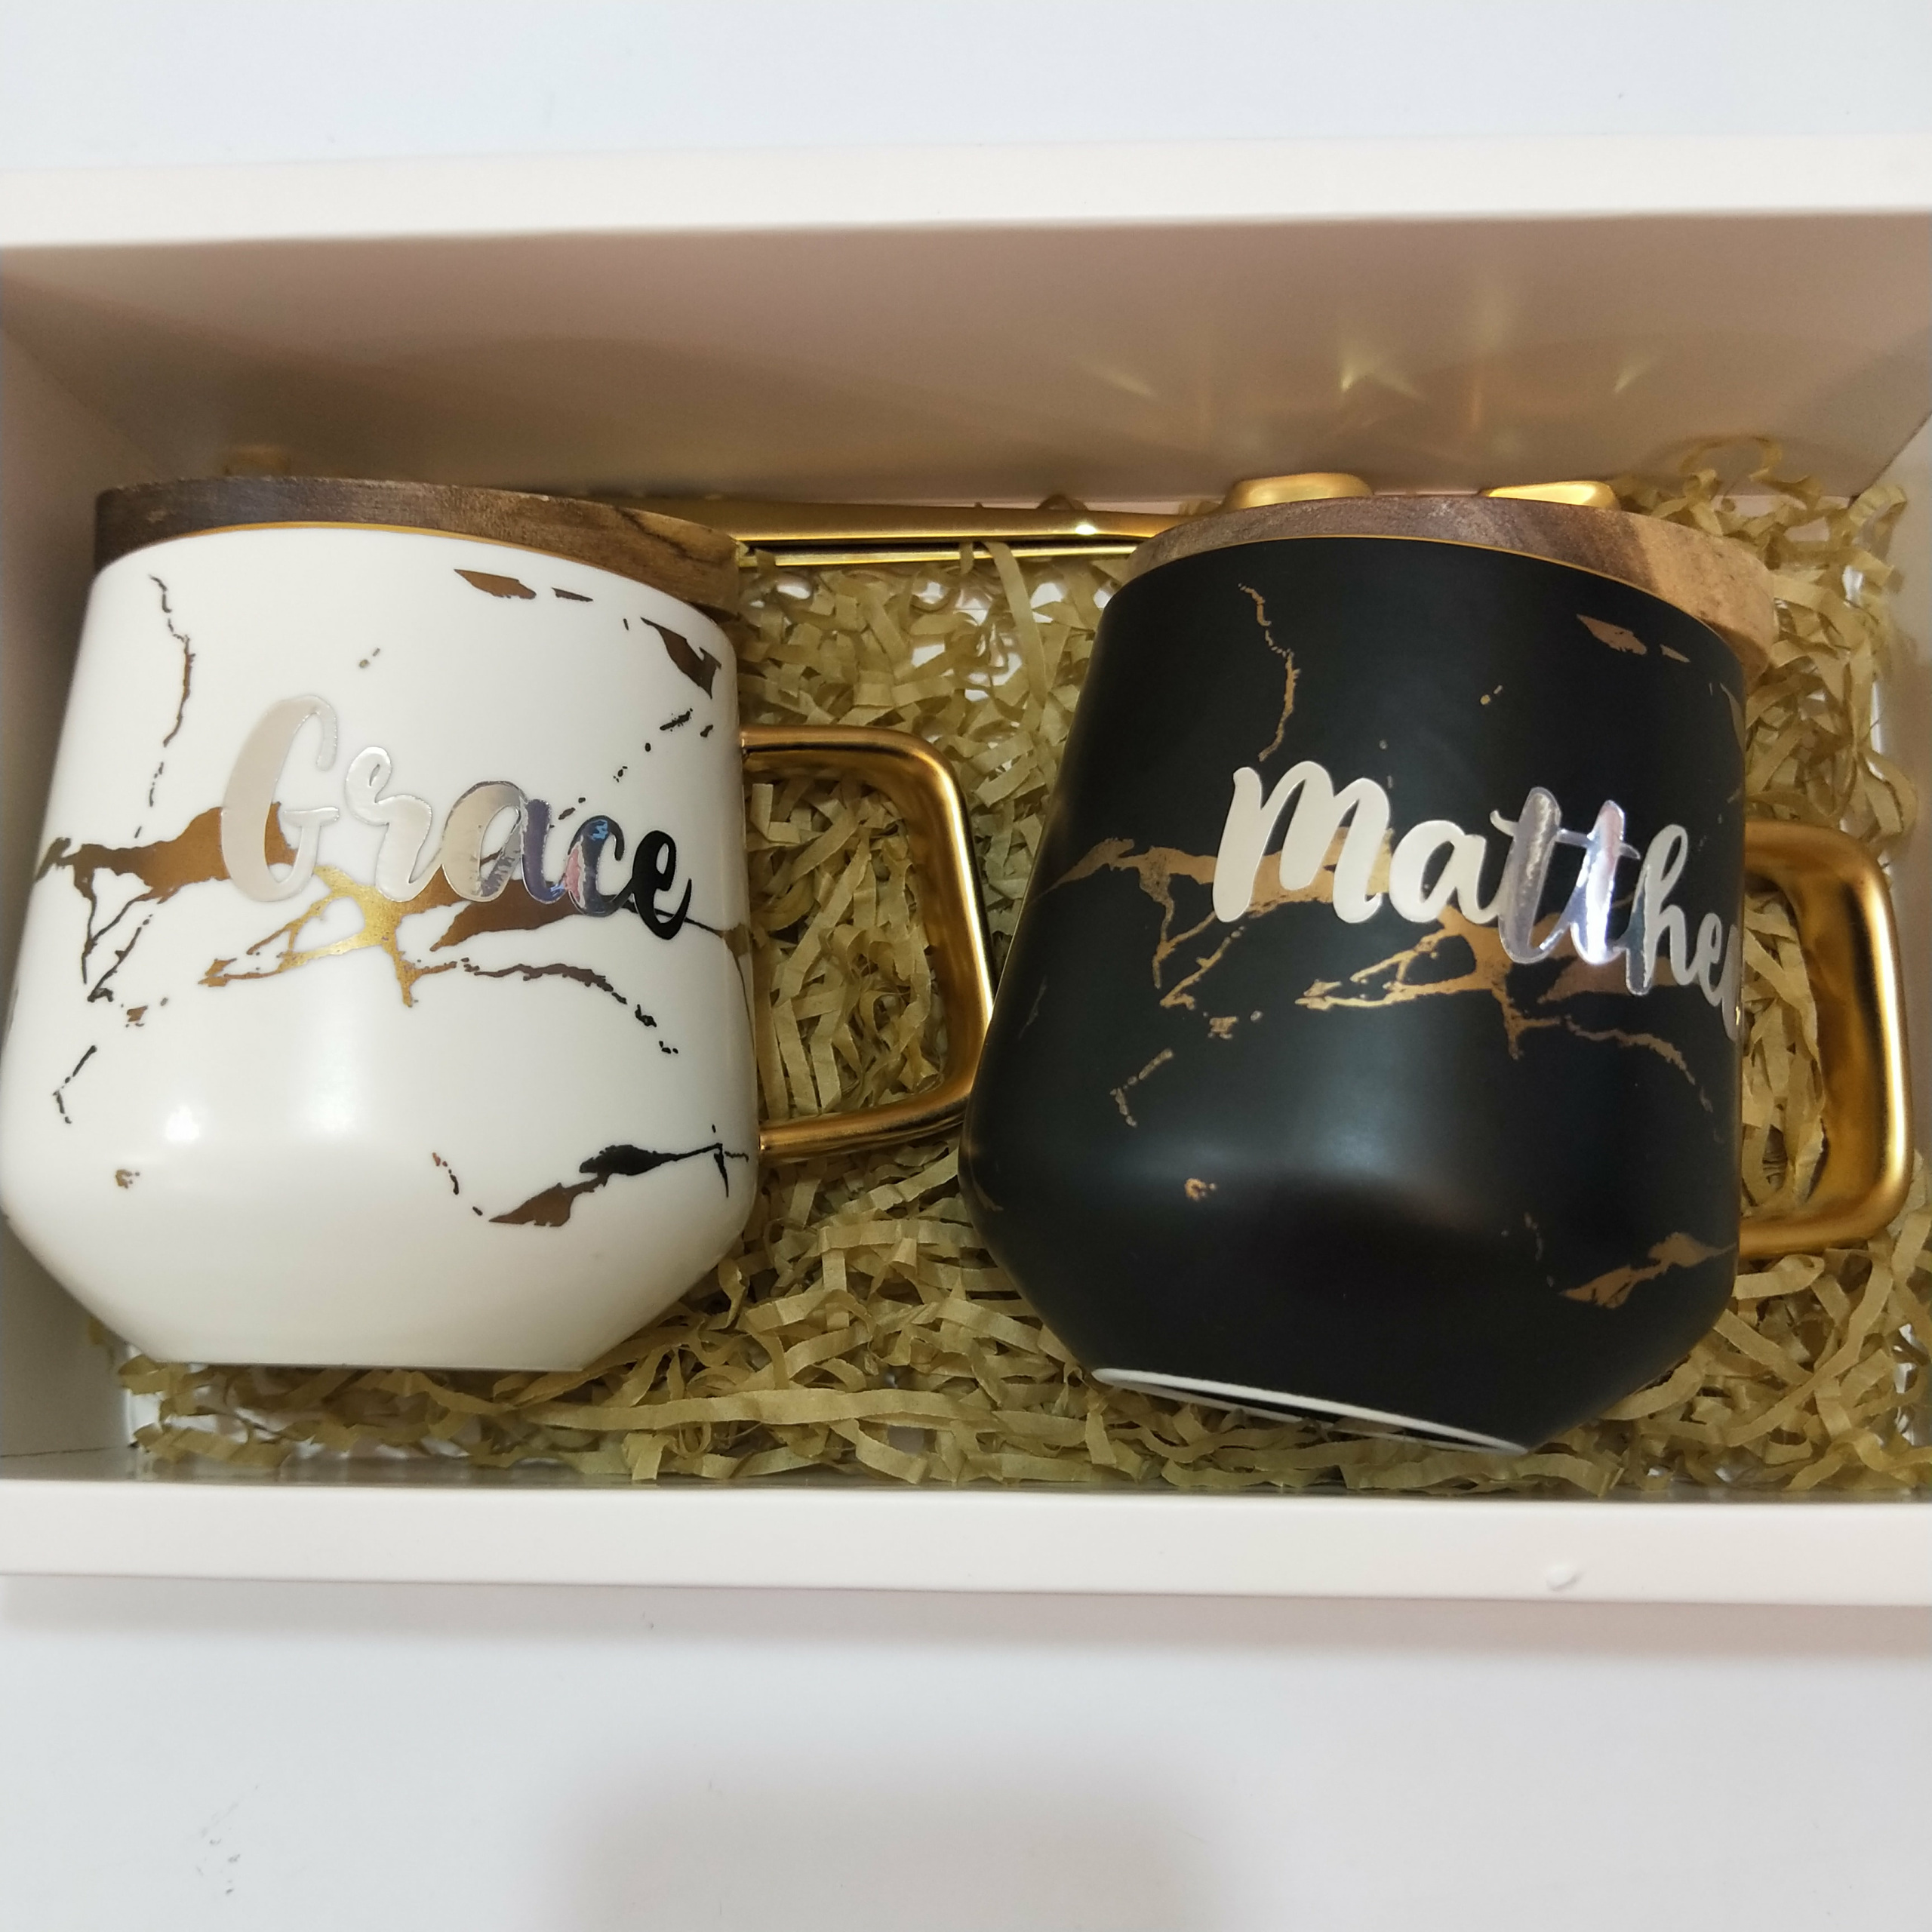 Monochrome Black White Marble Ceramic Mug Gold Vein